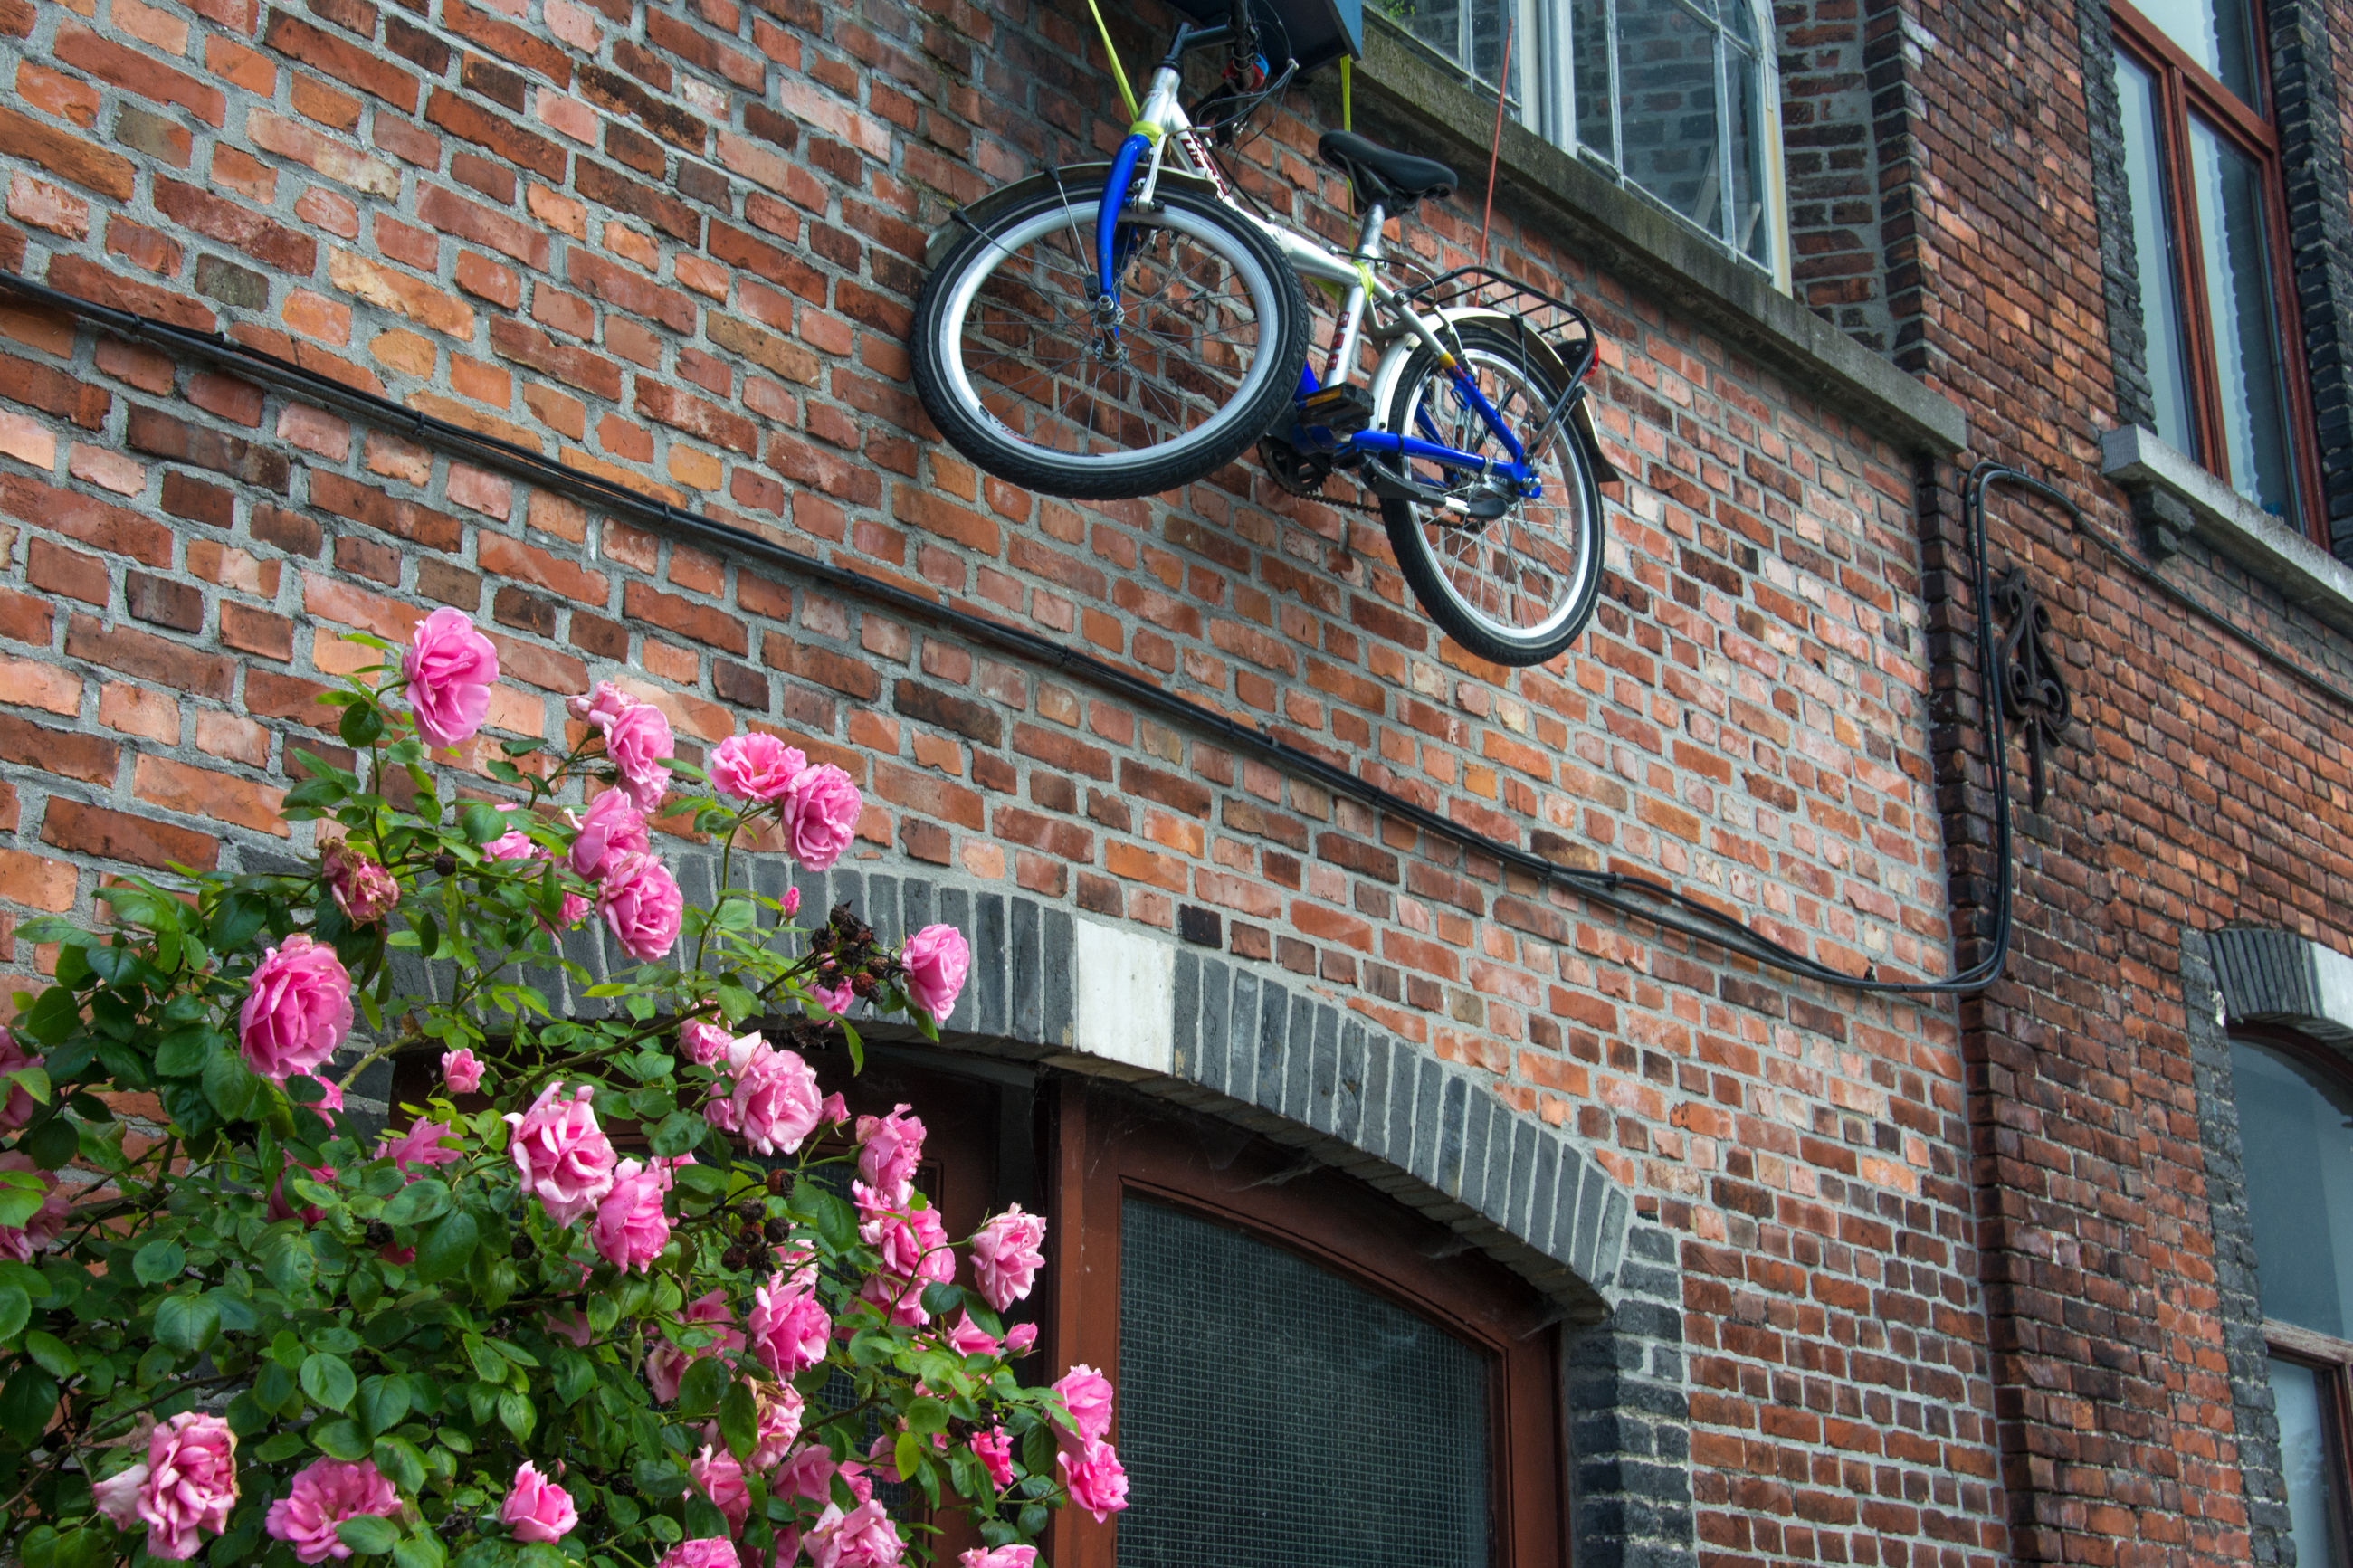 VIEW OF FLOWERS AGAINST BRICK WALL